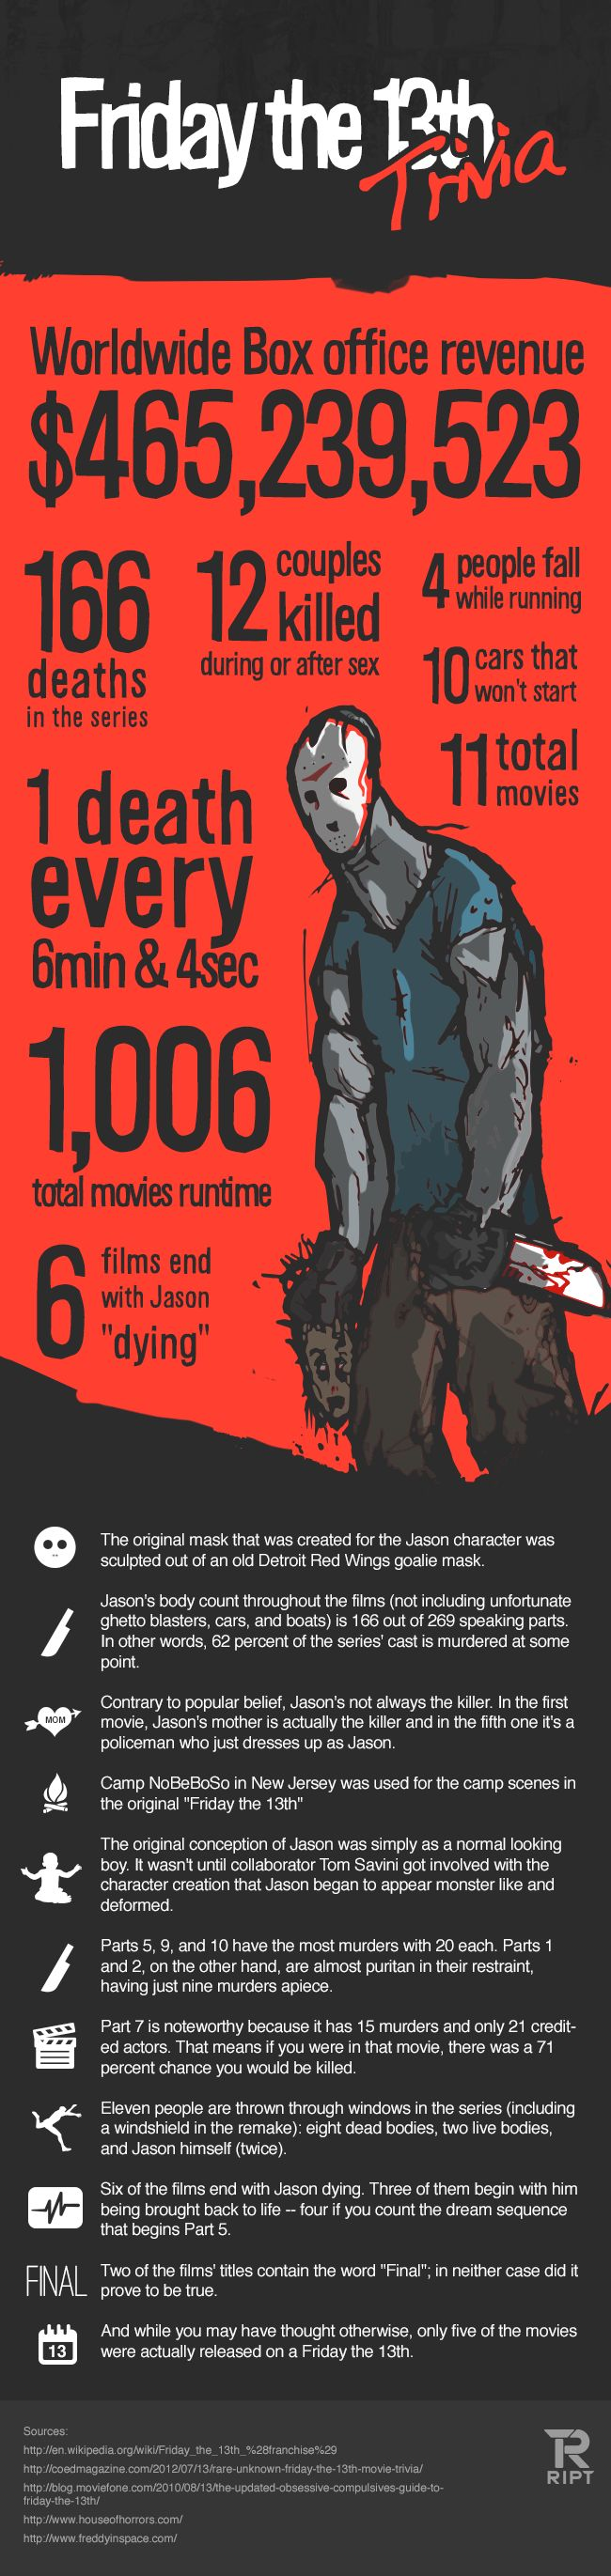 [Infographic] Friday the 13th (Jason Voorhees) Movie Trivia #movie